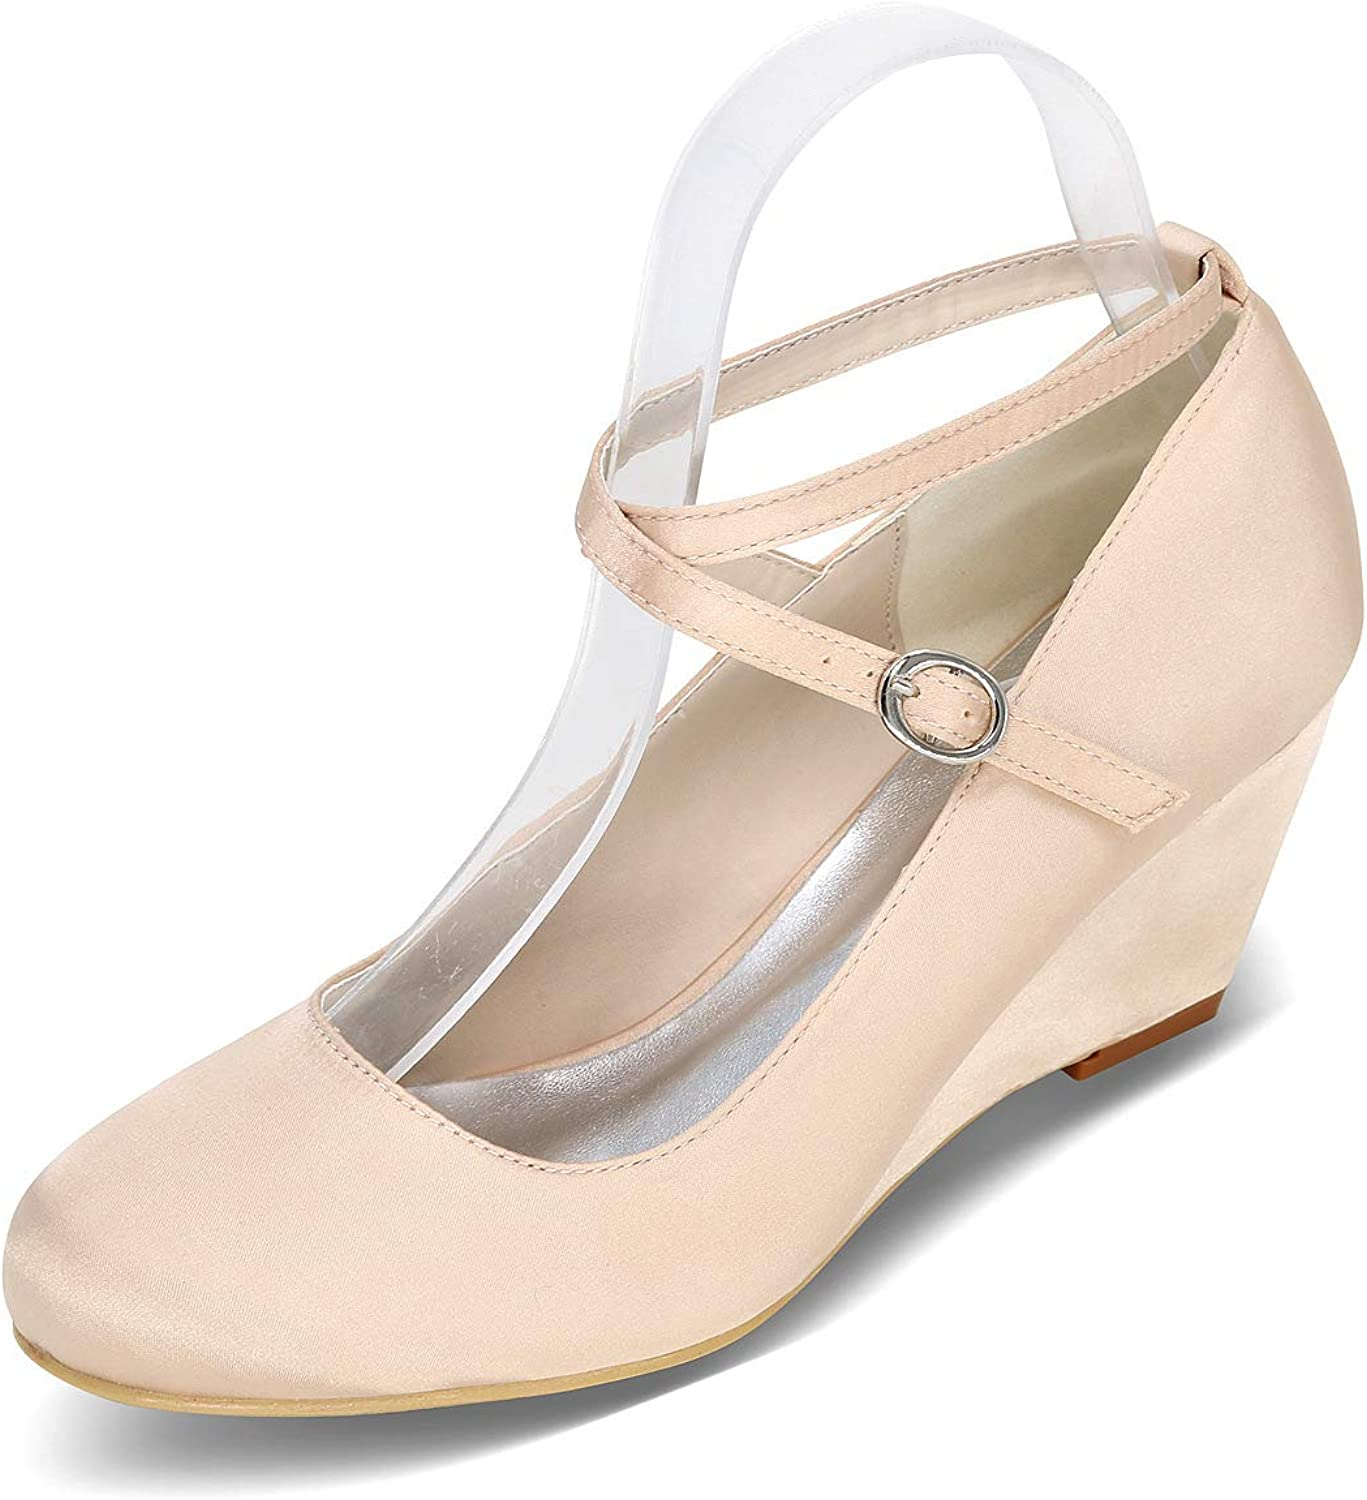 LLBubble Women Chunky Cone Heels Satin Wedding shoes Round Toe Bridal Pumps Buckle Strap Prom Evening Party Dress shoes 9140-09